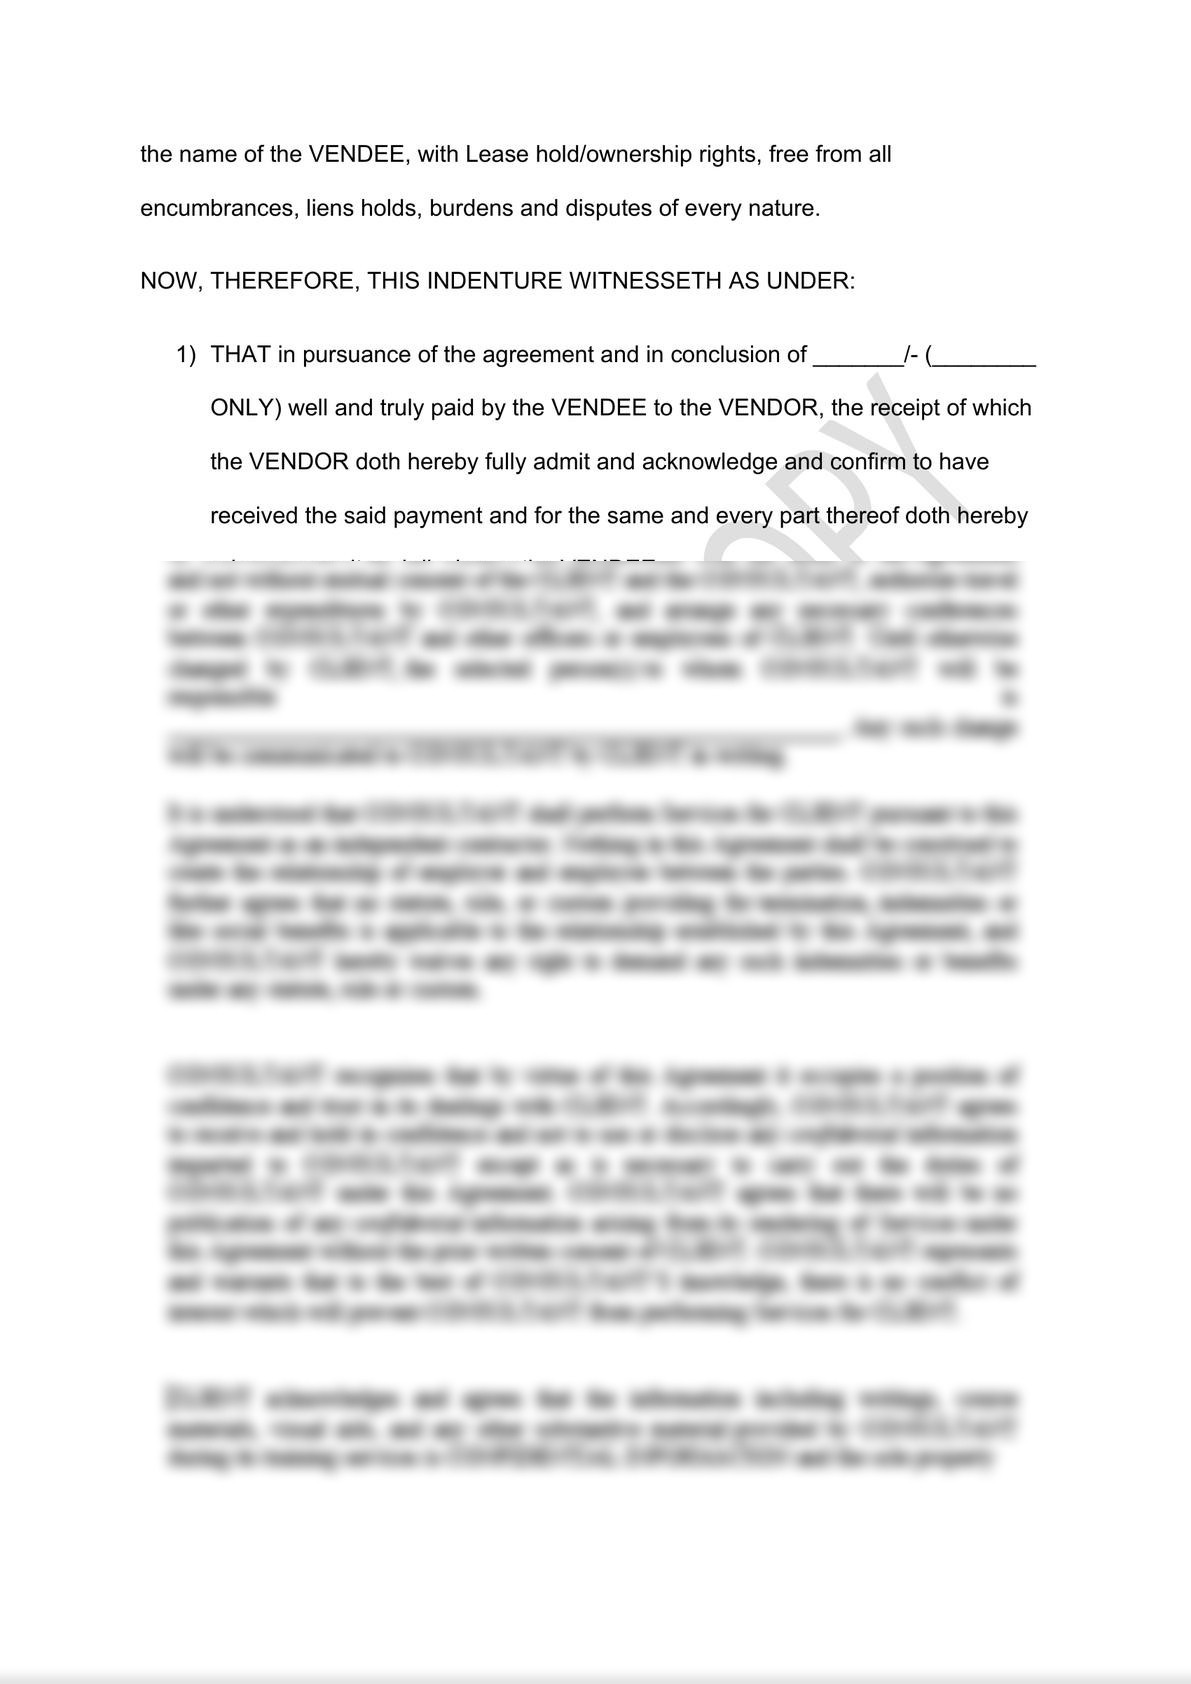 Sale Deed of Immovable Property Draft -1